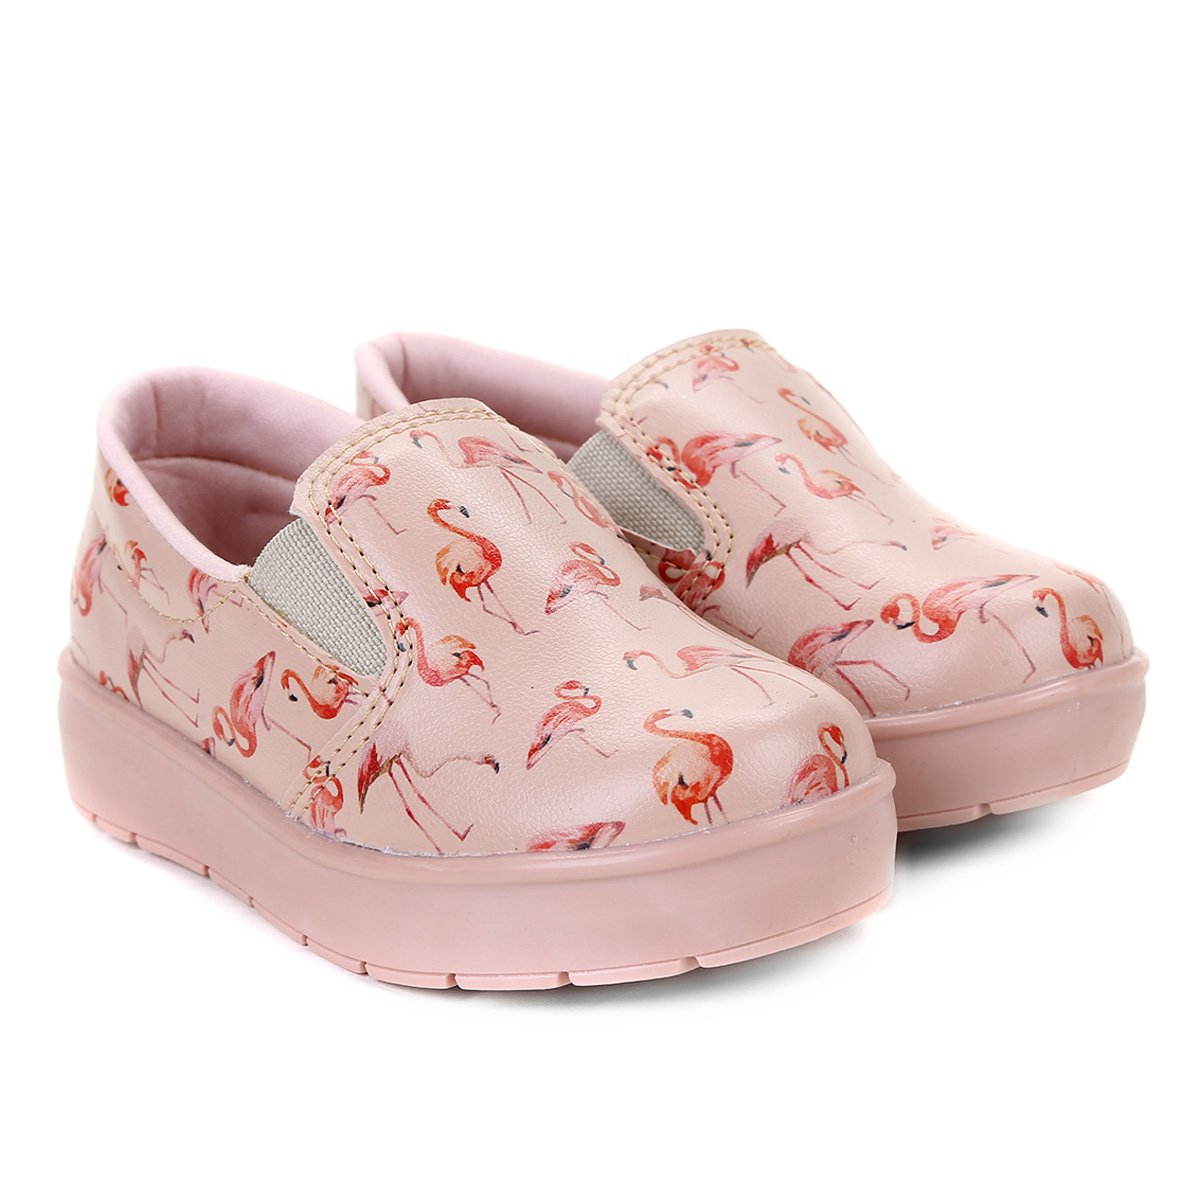 4f38bb1205 Tênis Slip On Estampado Flamingos Infantil Bella Ninna